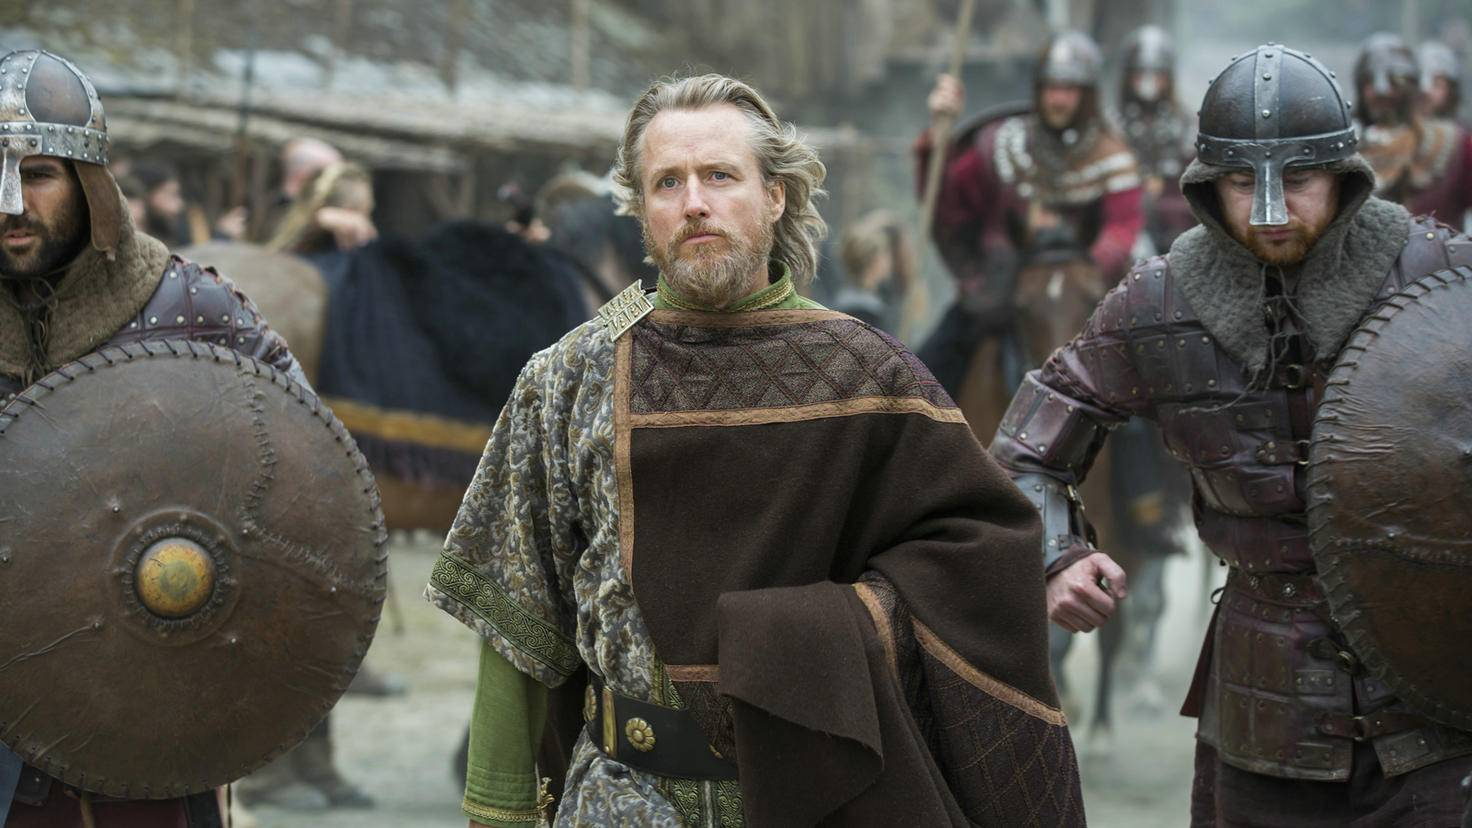 König Egbert Staffel 3 Vikings